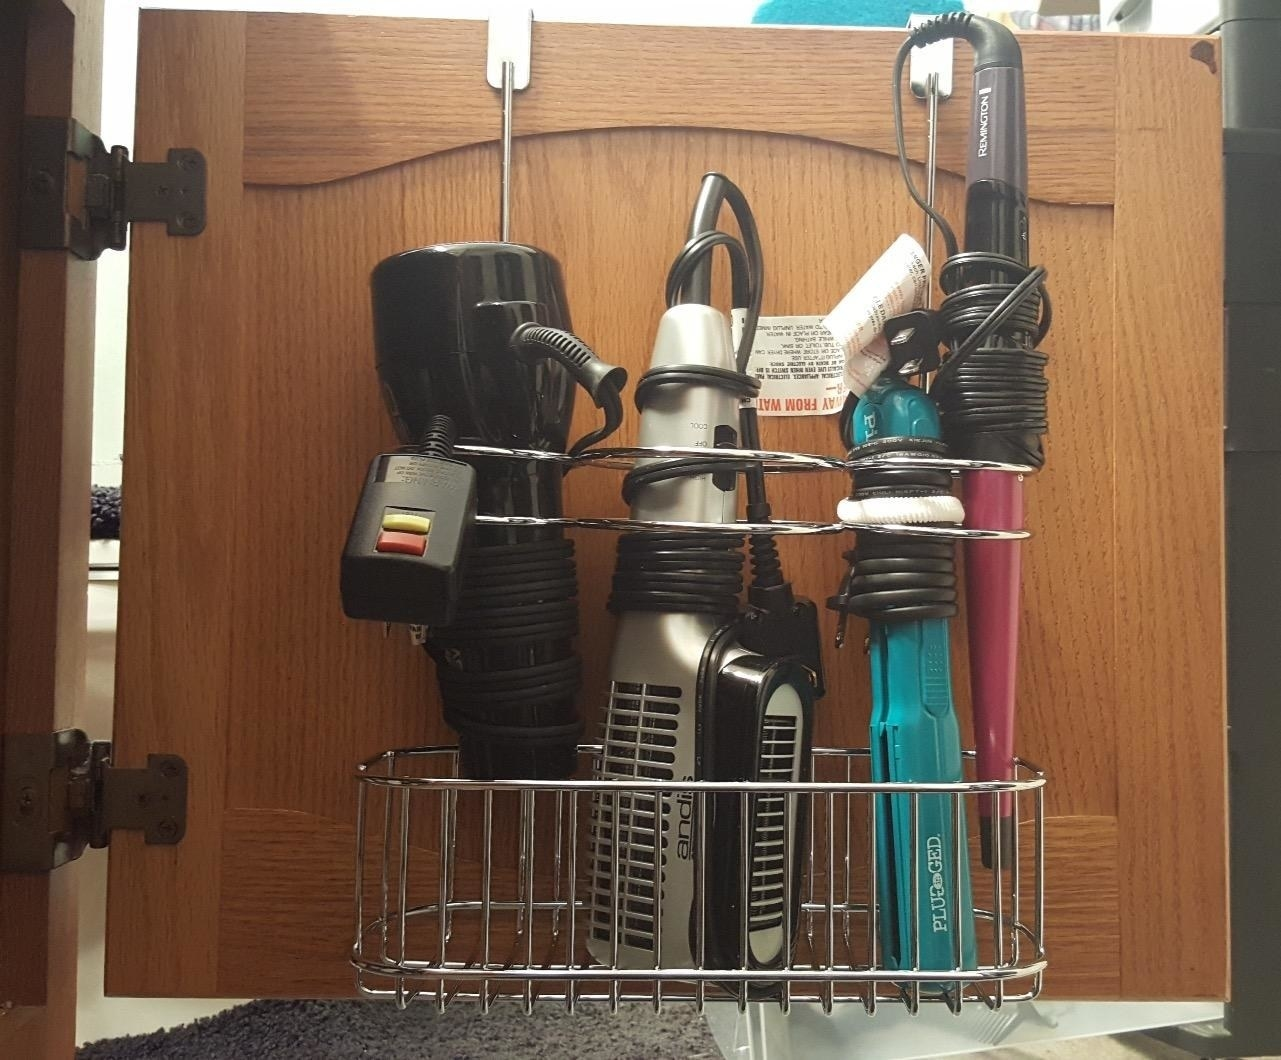 the metal organizer attached to the door of a bathroom cabinet holding various haircare appliances